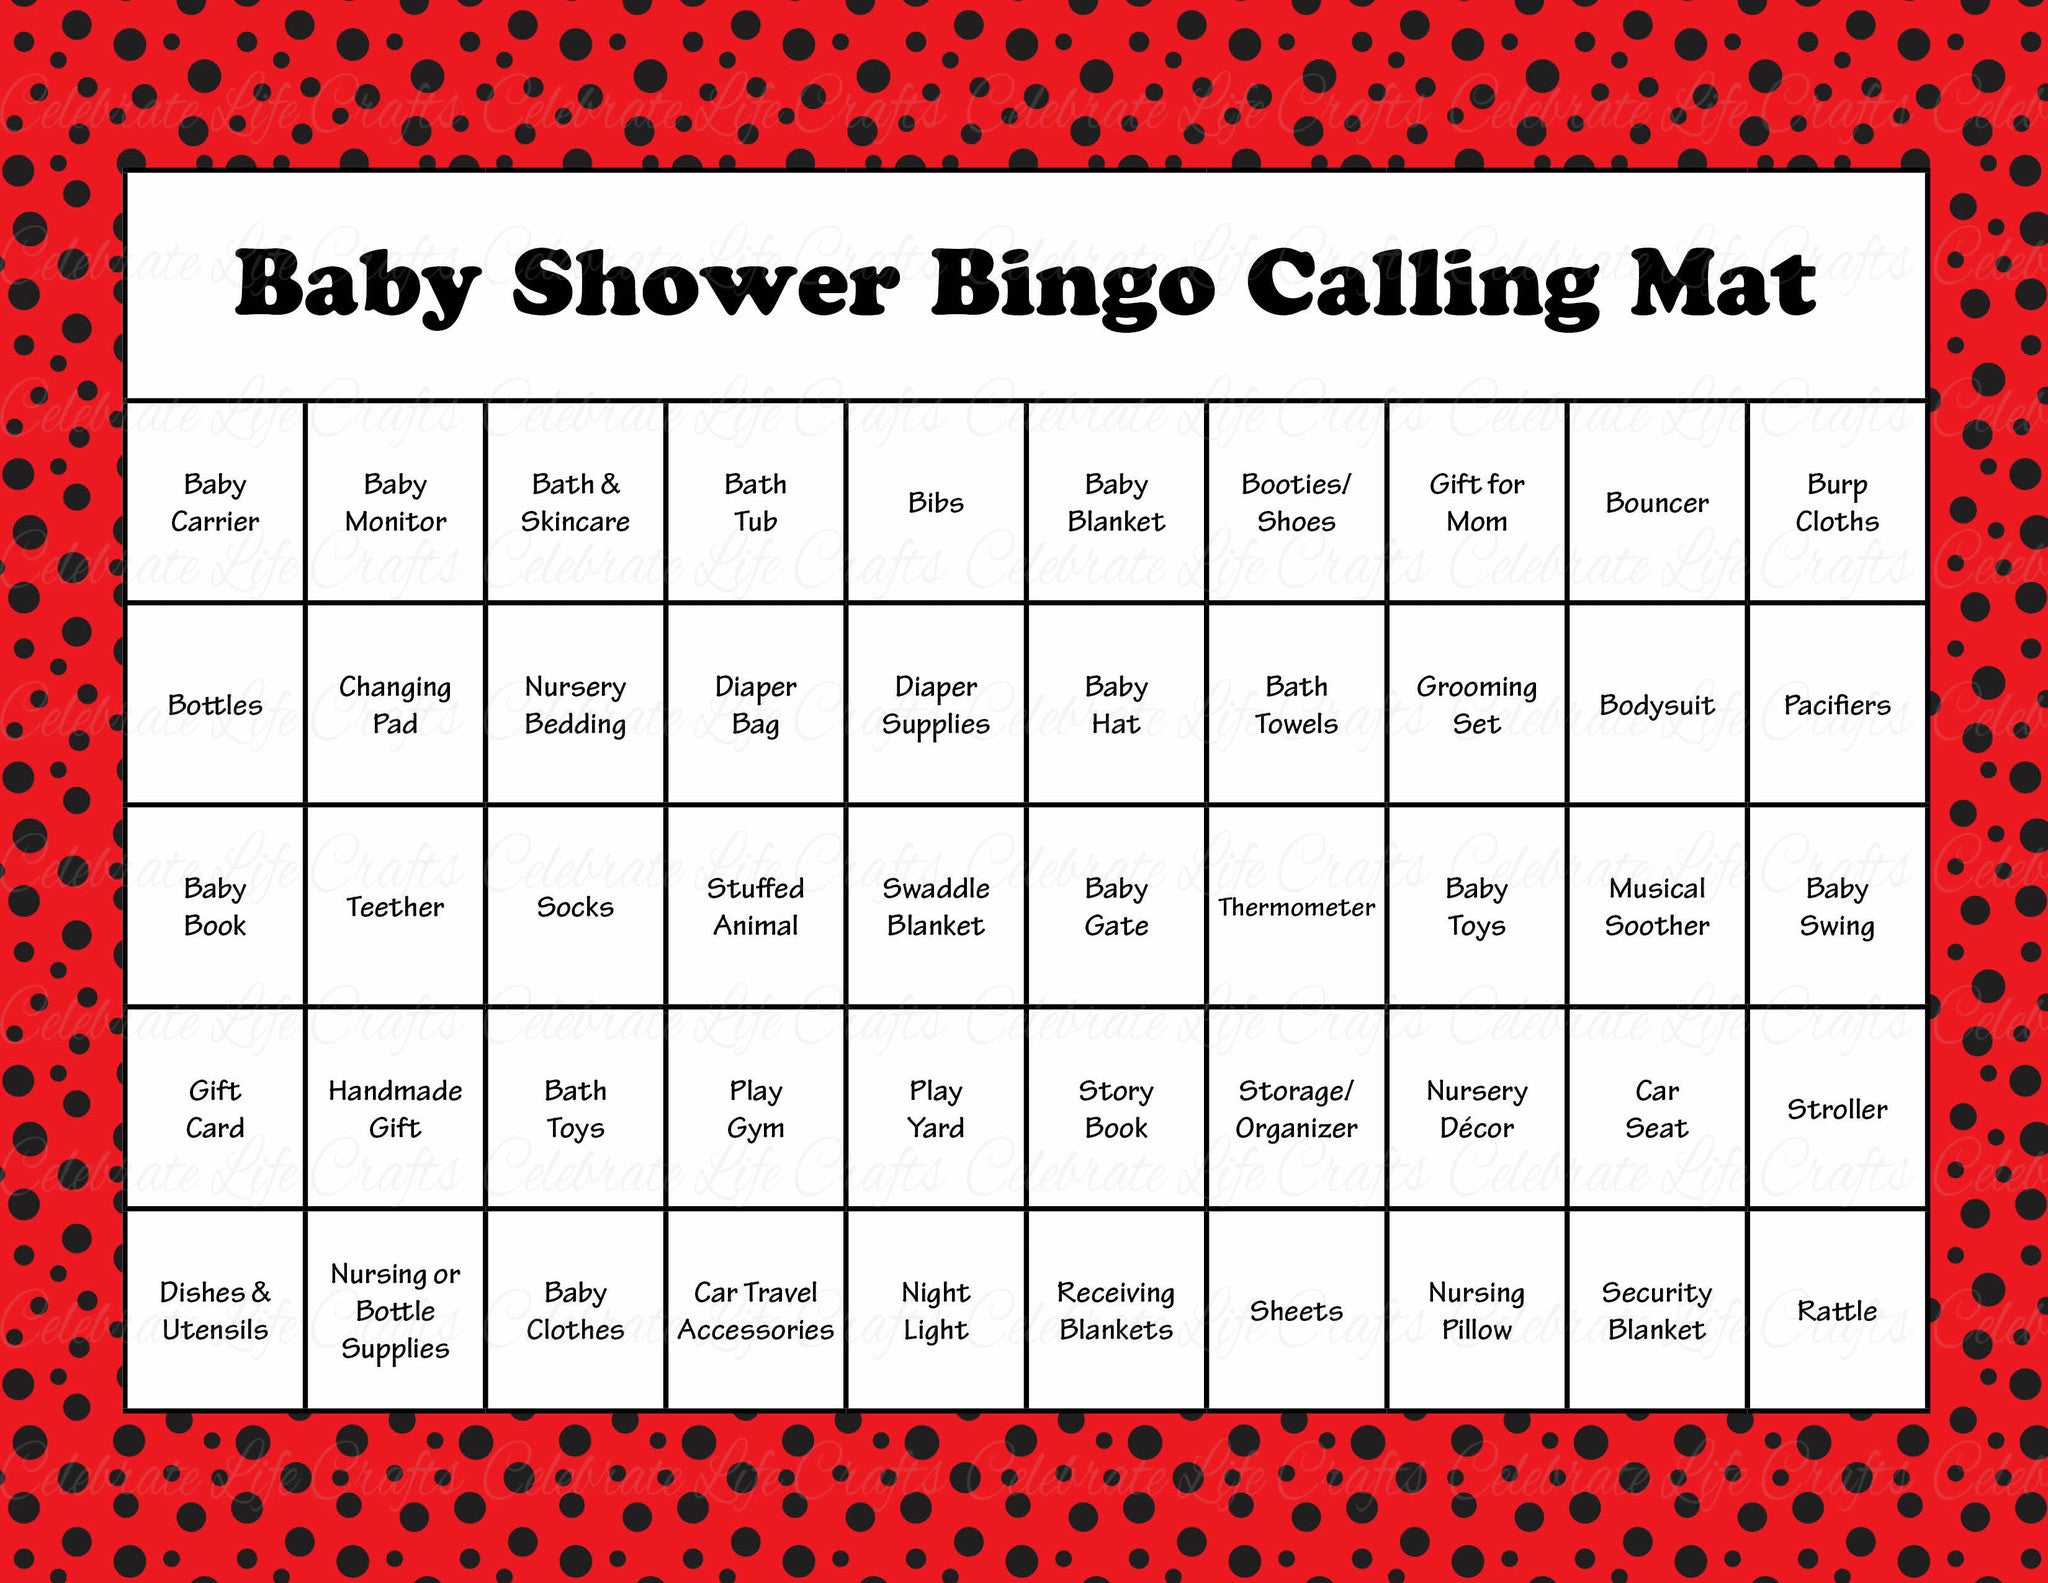 photograph relating to Printable Bingo Calling Cards named Ladybug Boy or girl Shower Recreation Down load for Woman Little one Bingo